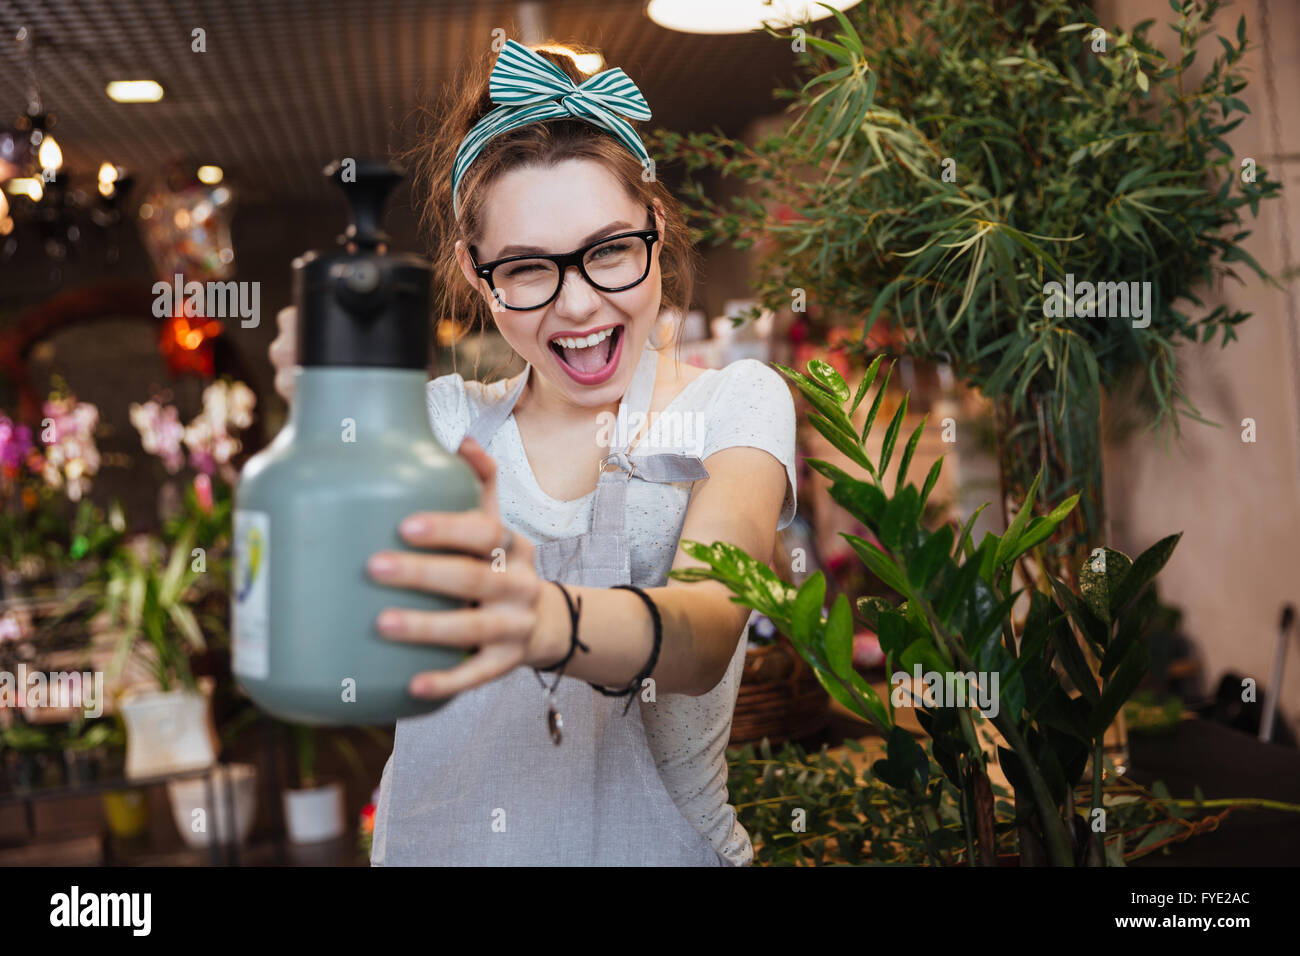 Playful attractive young woman florist pointing with water sprayer on you in flower shop - Stock Image